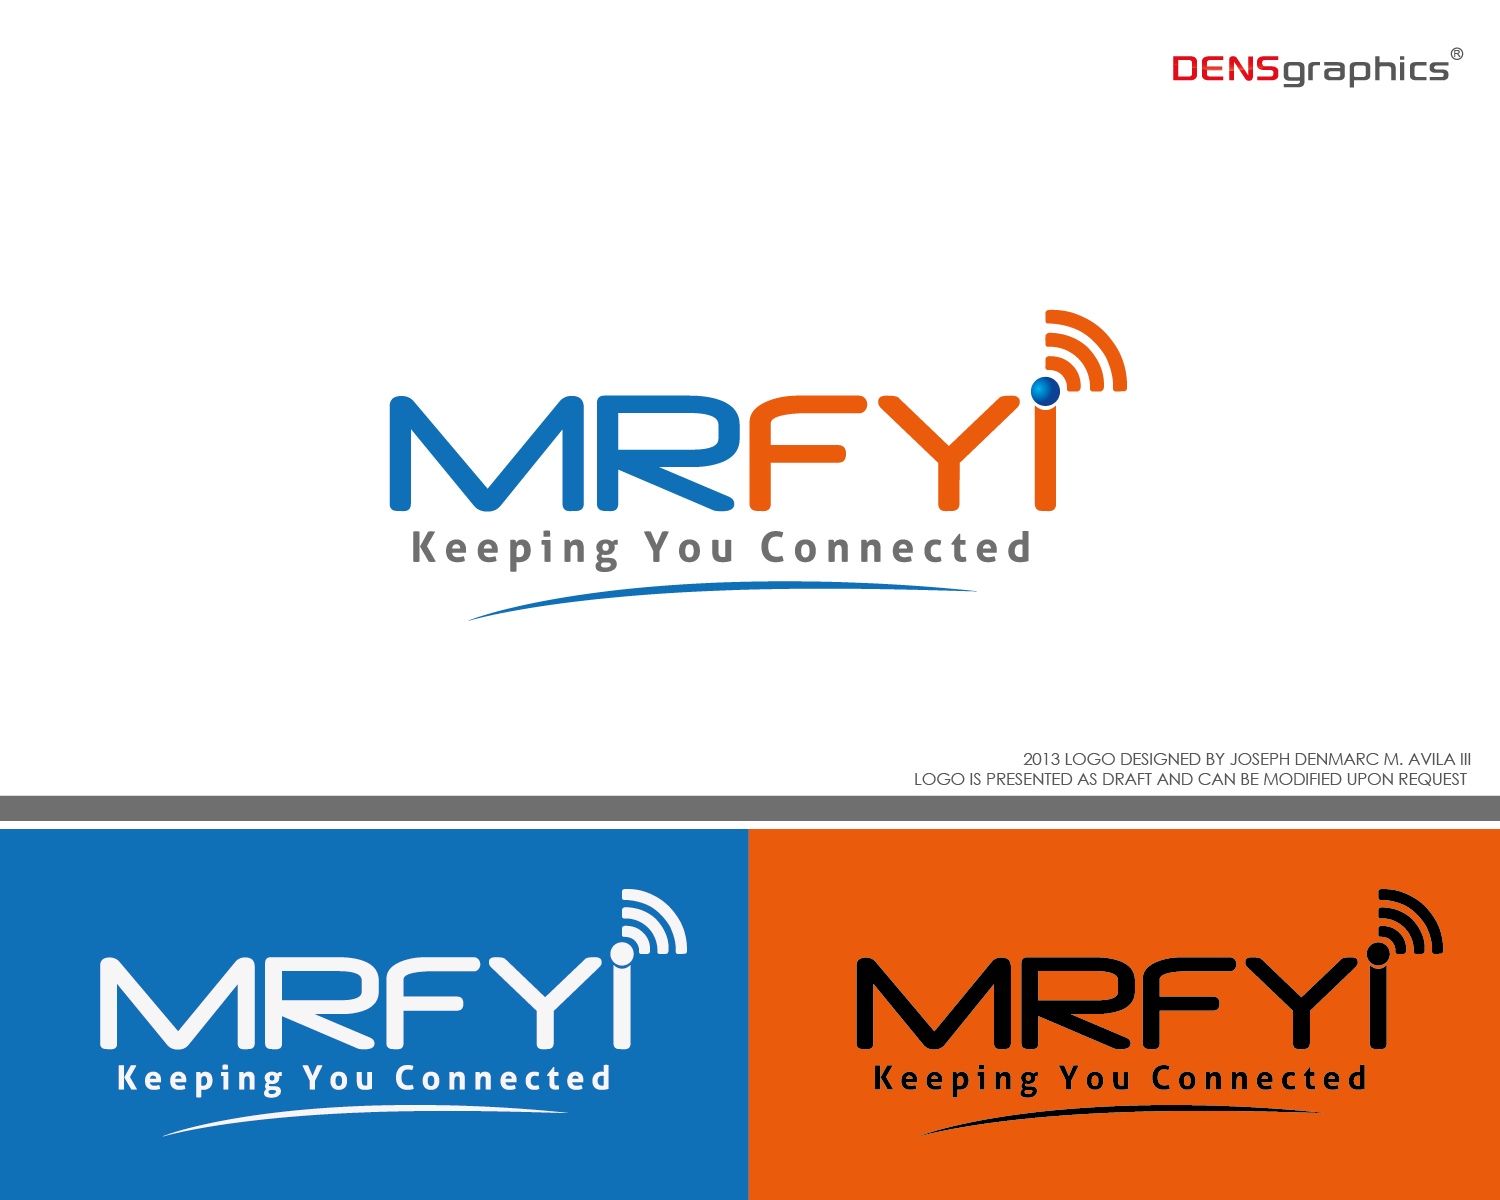 Mrfyi - Communications and Media Logo